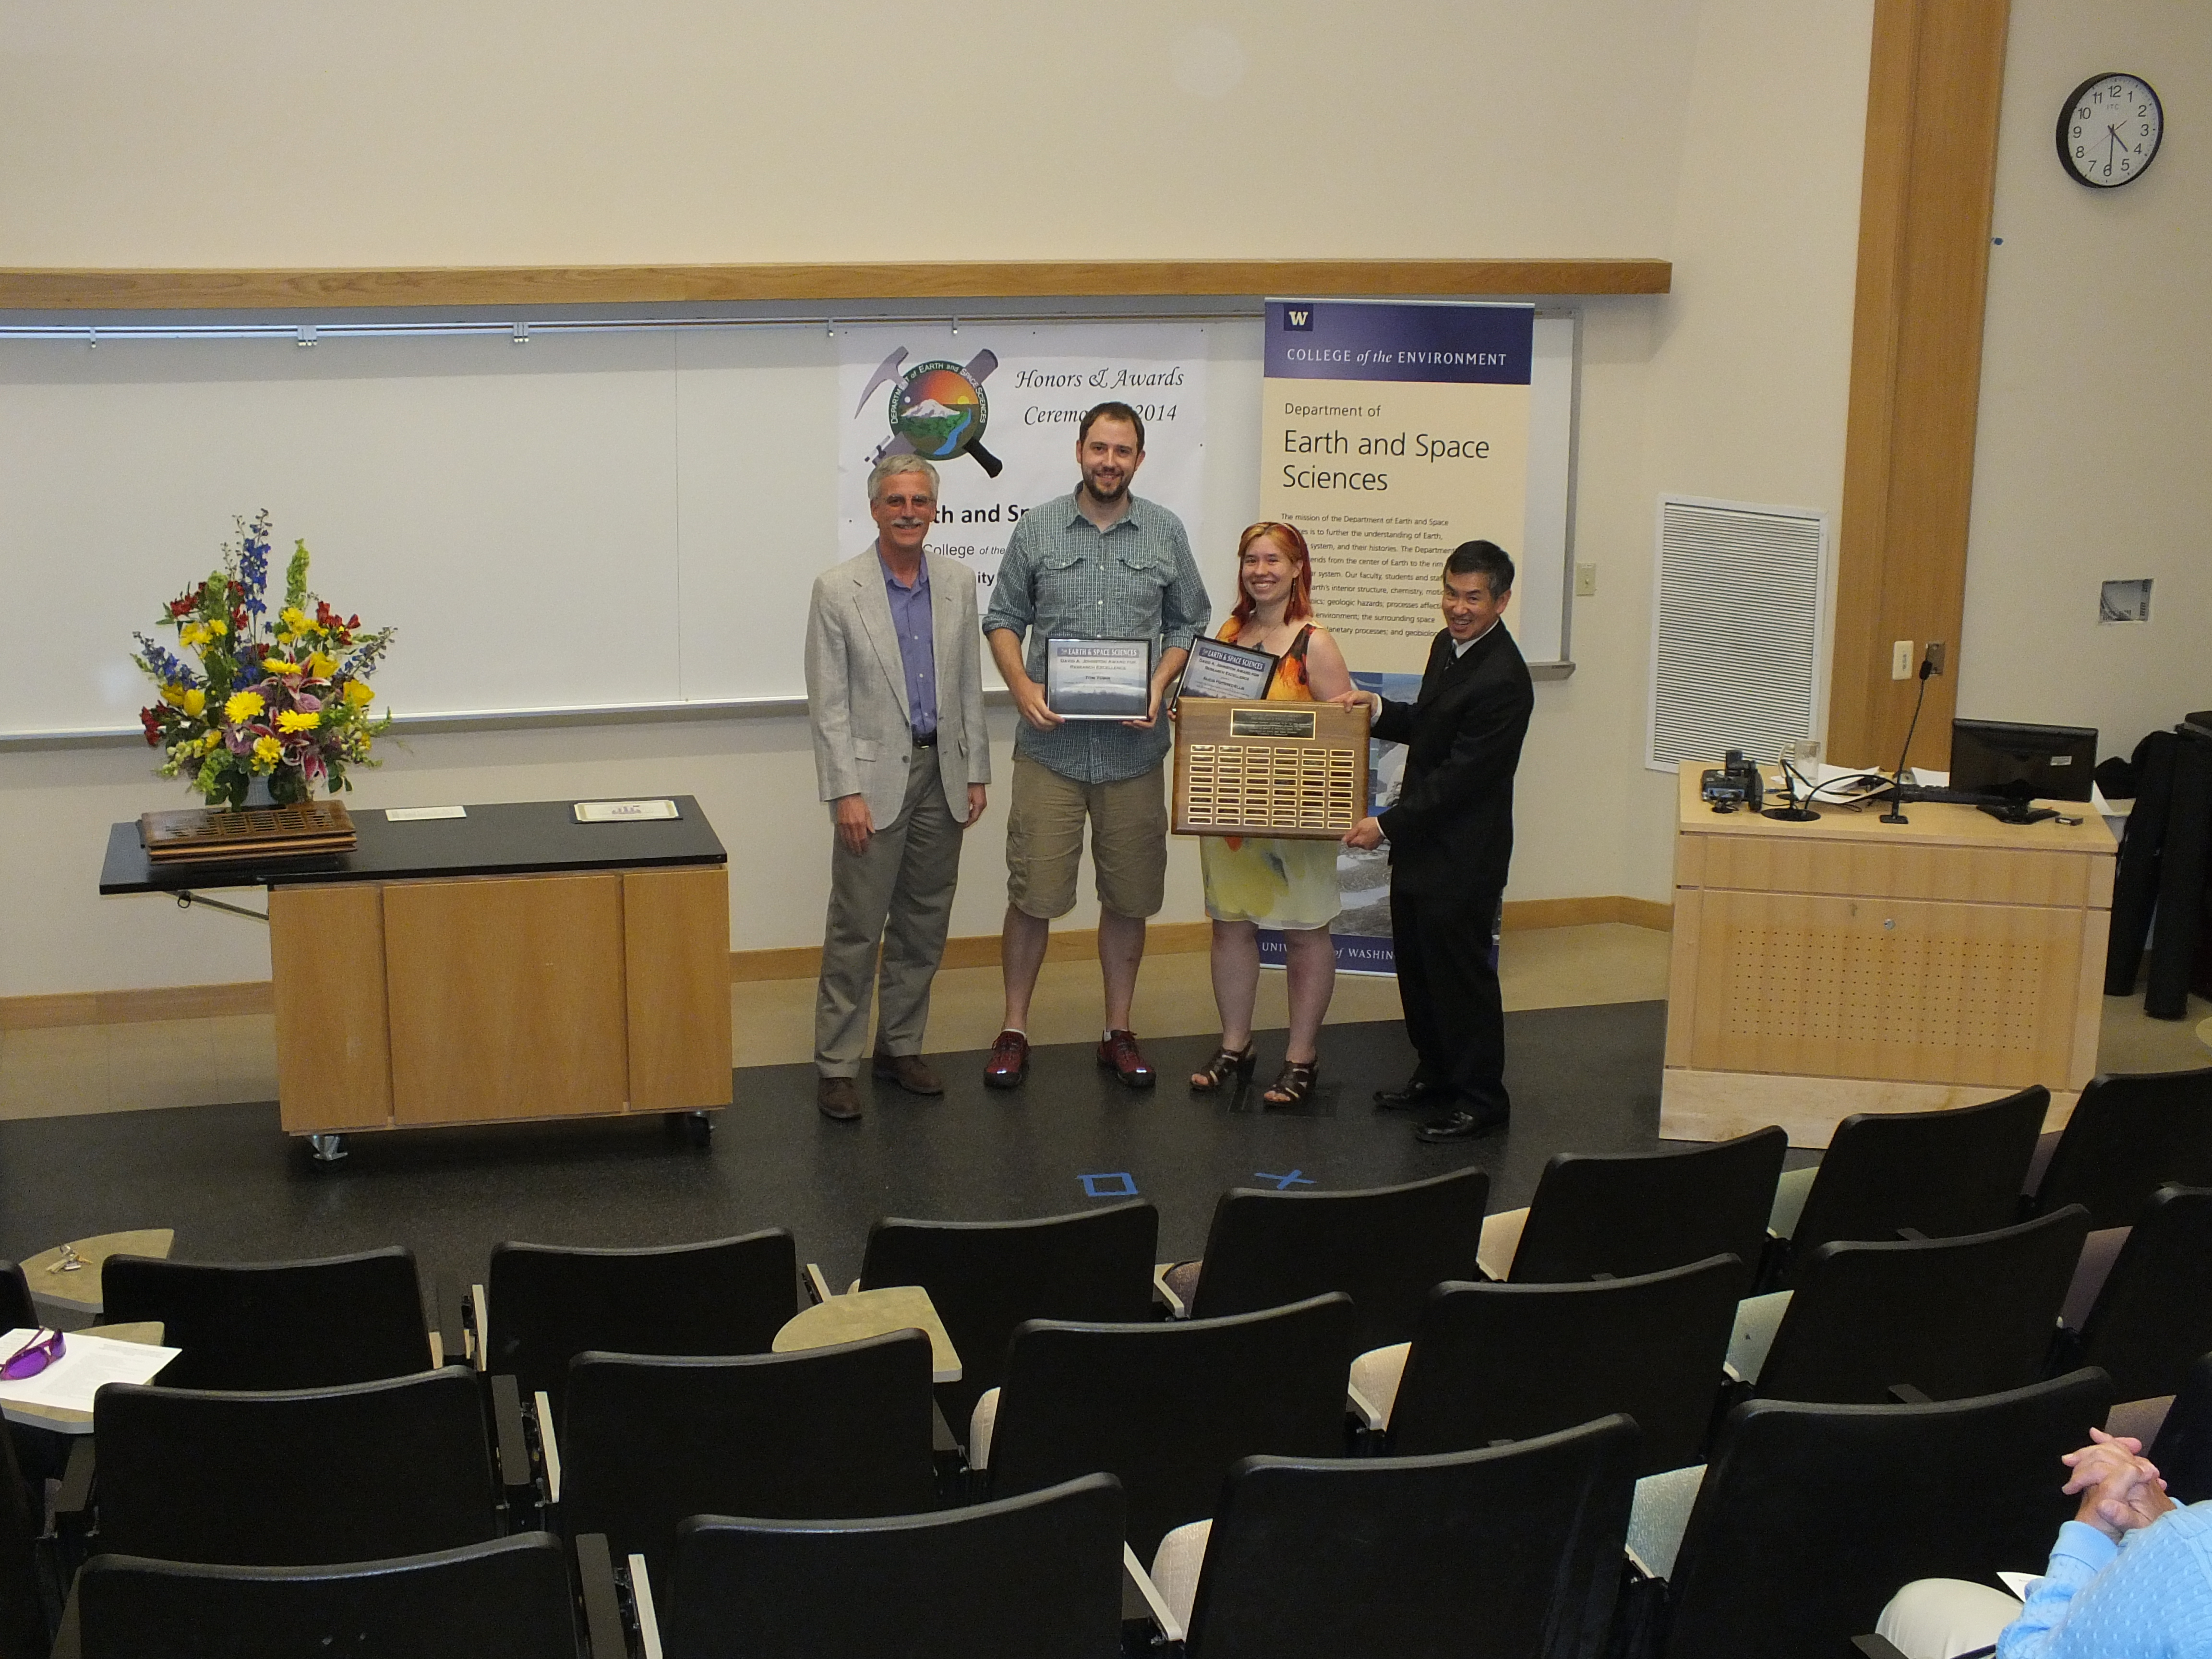 Photo of Alicia Hotovec-Ellis and Tom Tobin receiving the Johnston Prize for Research Excellence.